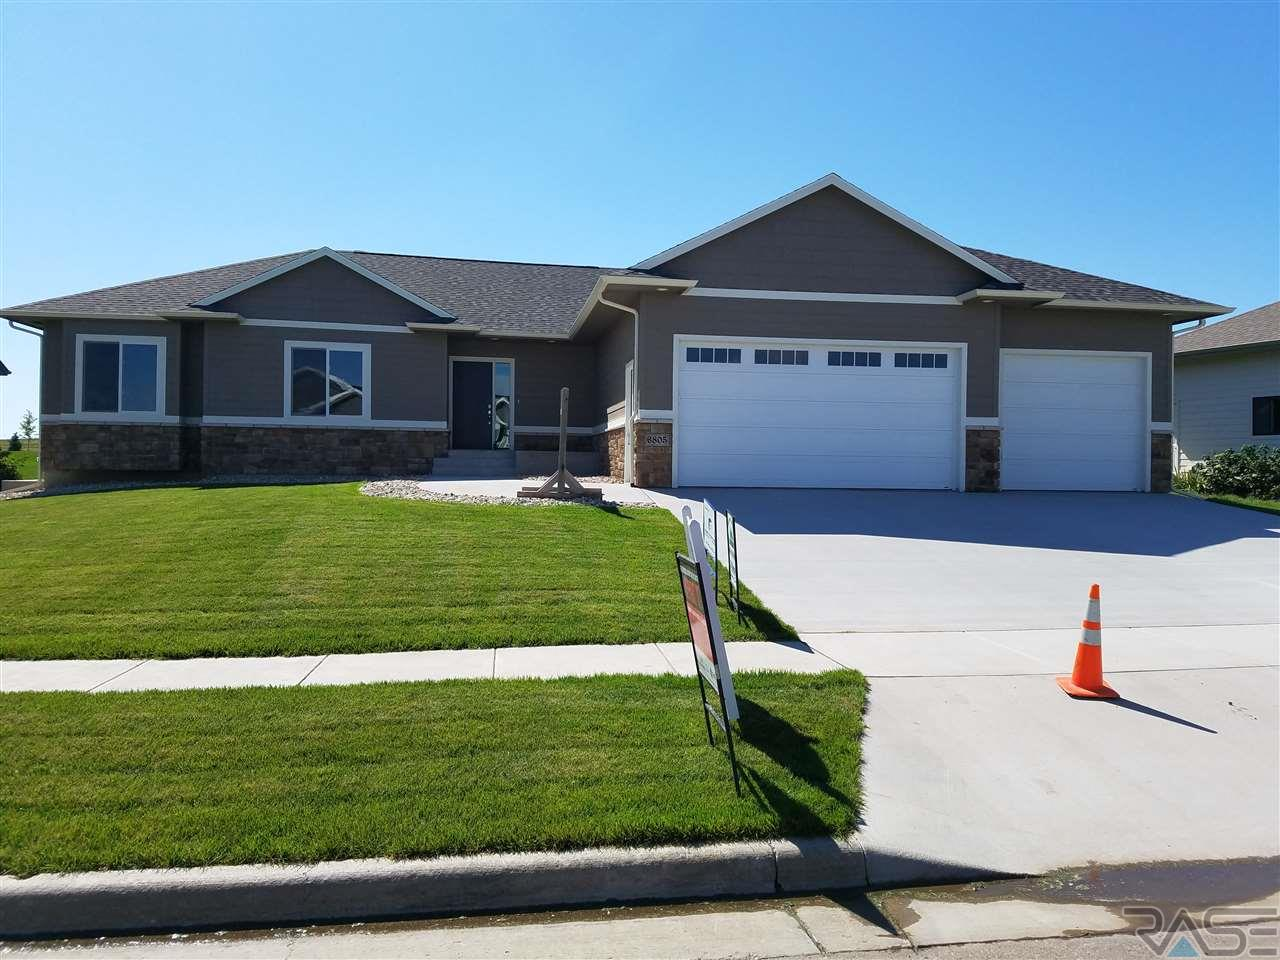 6805 E Steamboat Trl, Sioux Falls, SD 57110